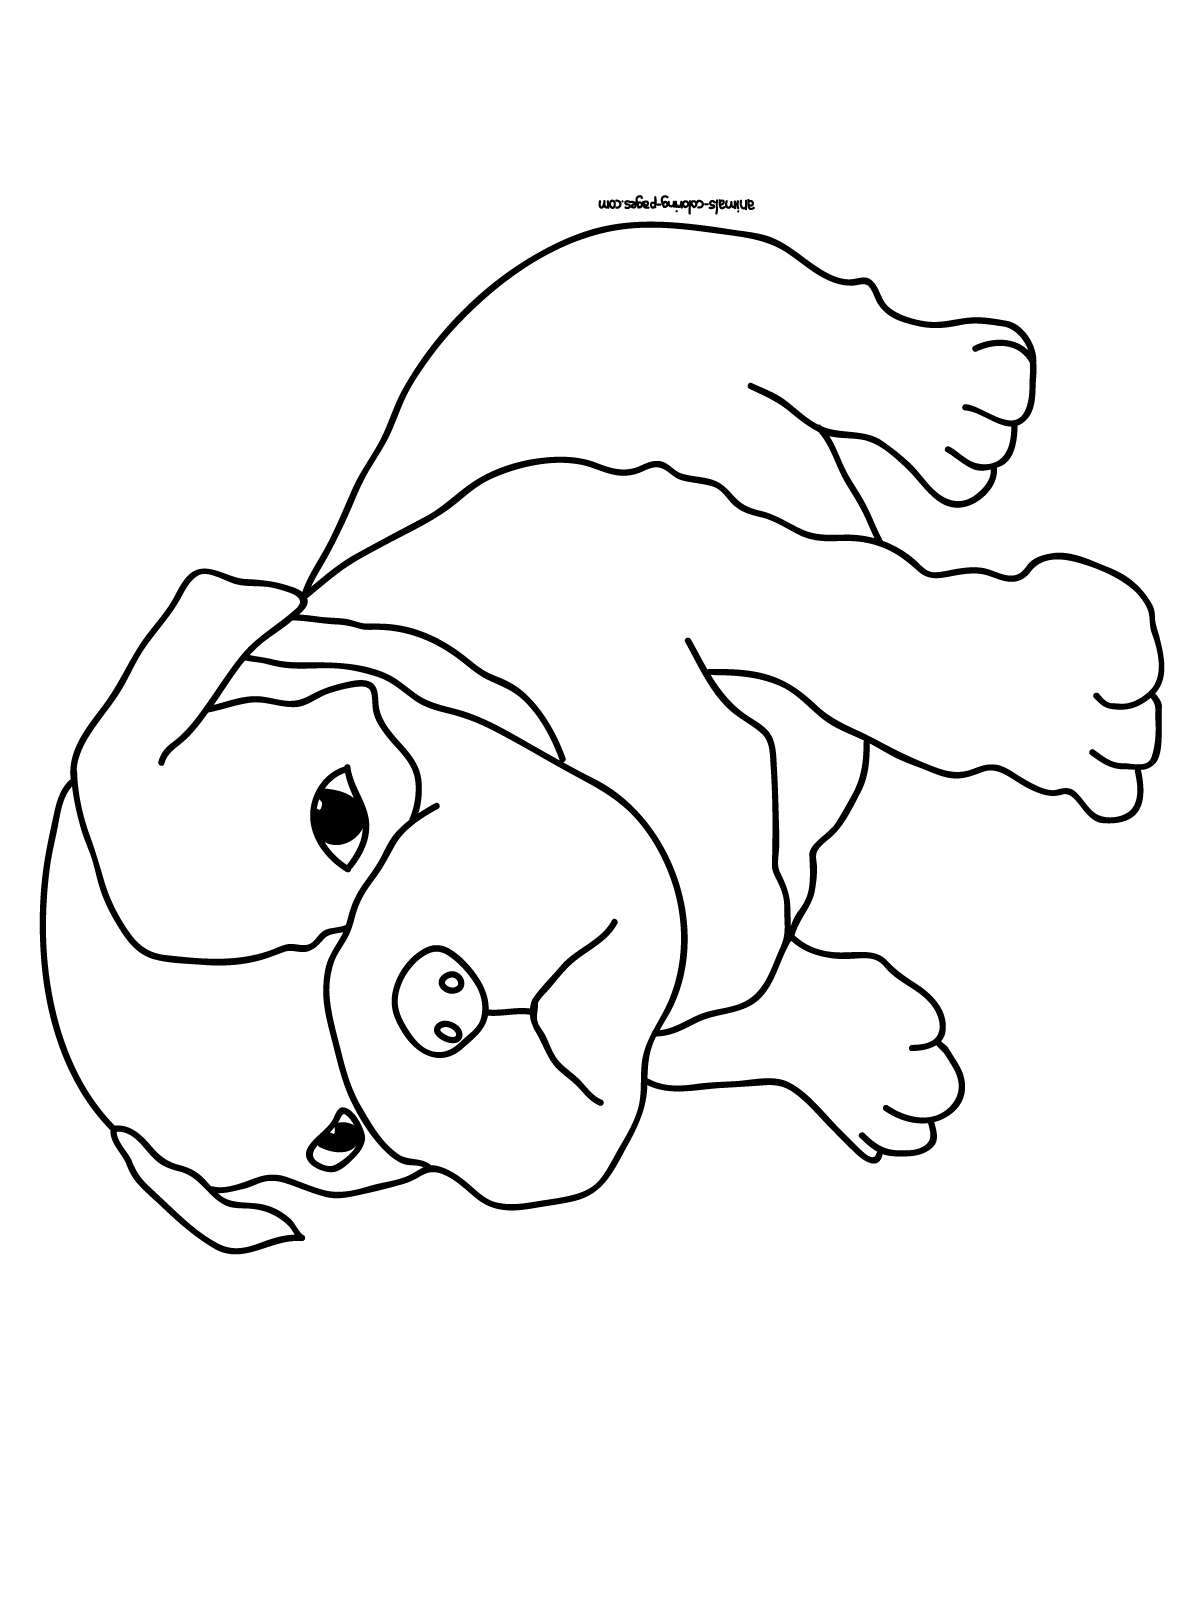 pets coloring pages for kids - photo#6